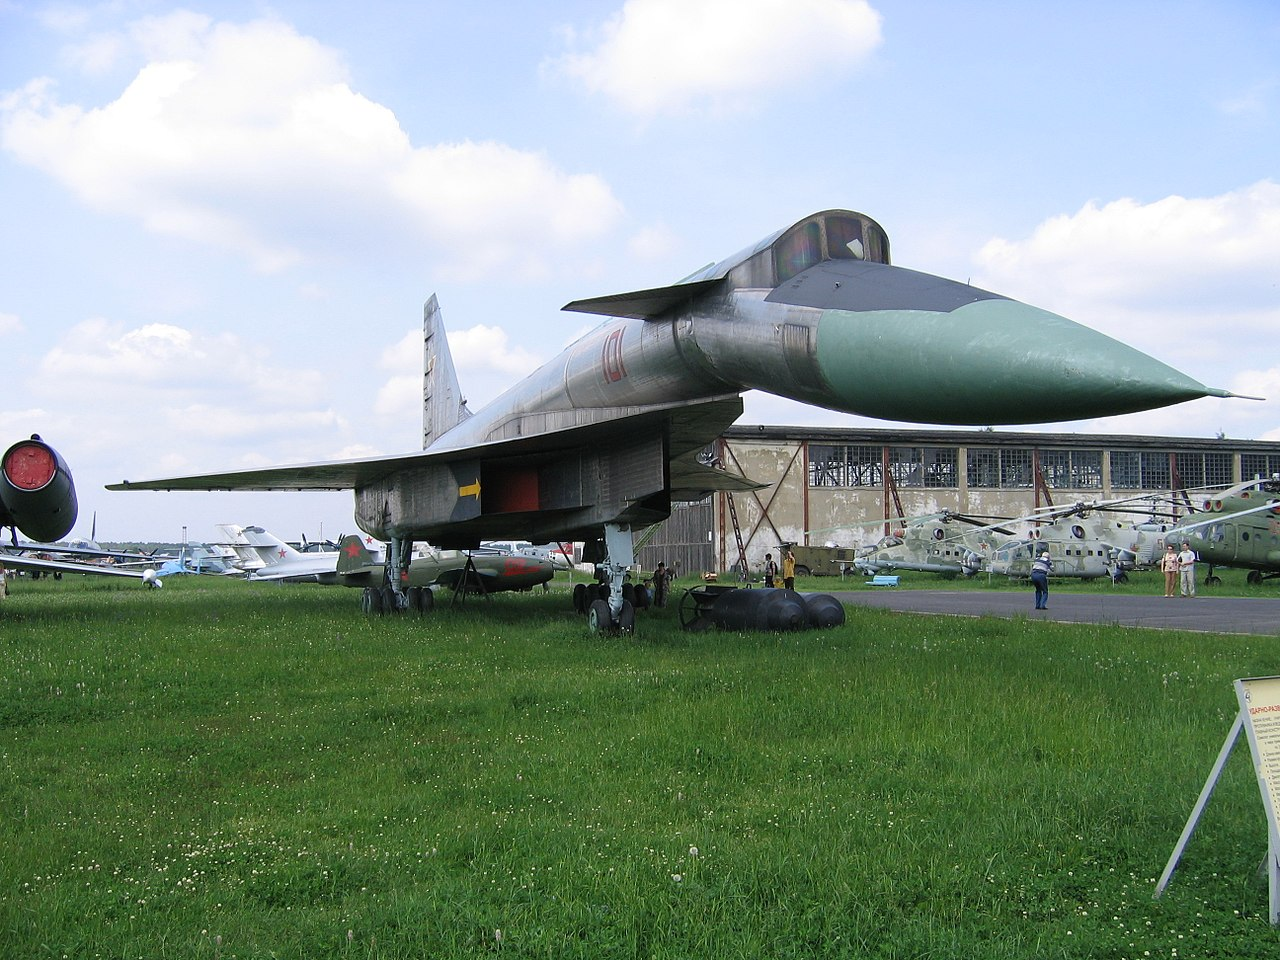 https://360tv.ru/media/uploads/article_images/2018/08/9452_1280px-Sukhoi_T-4_Monino_museum.JPG